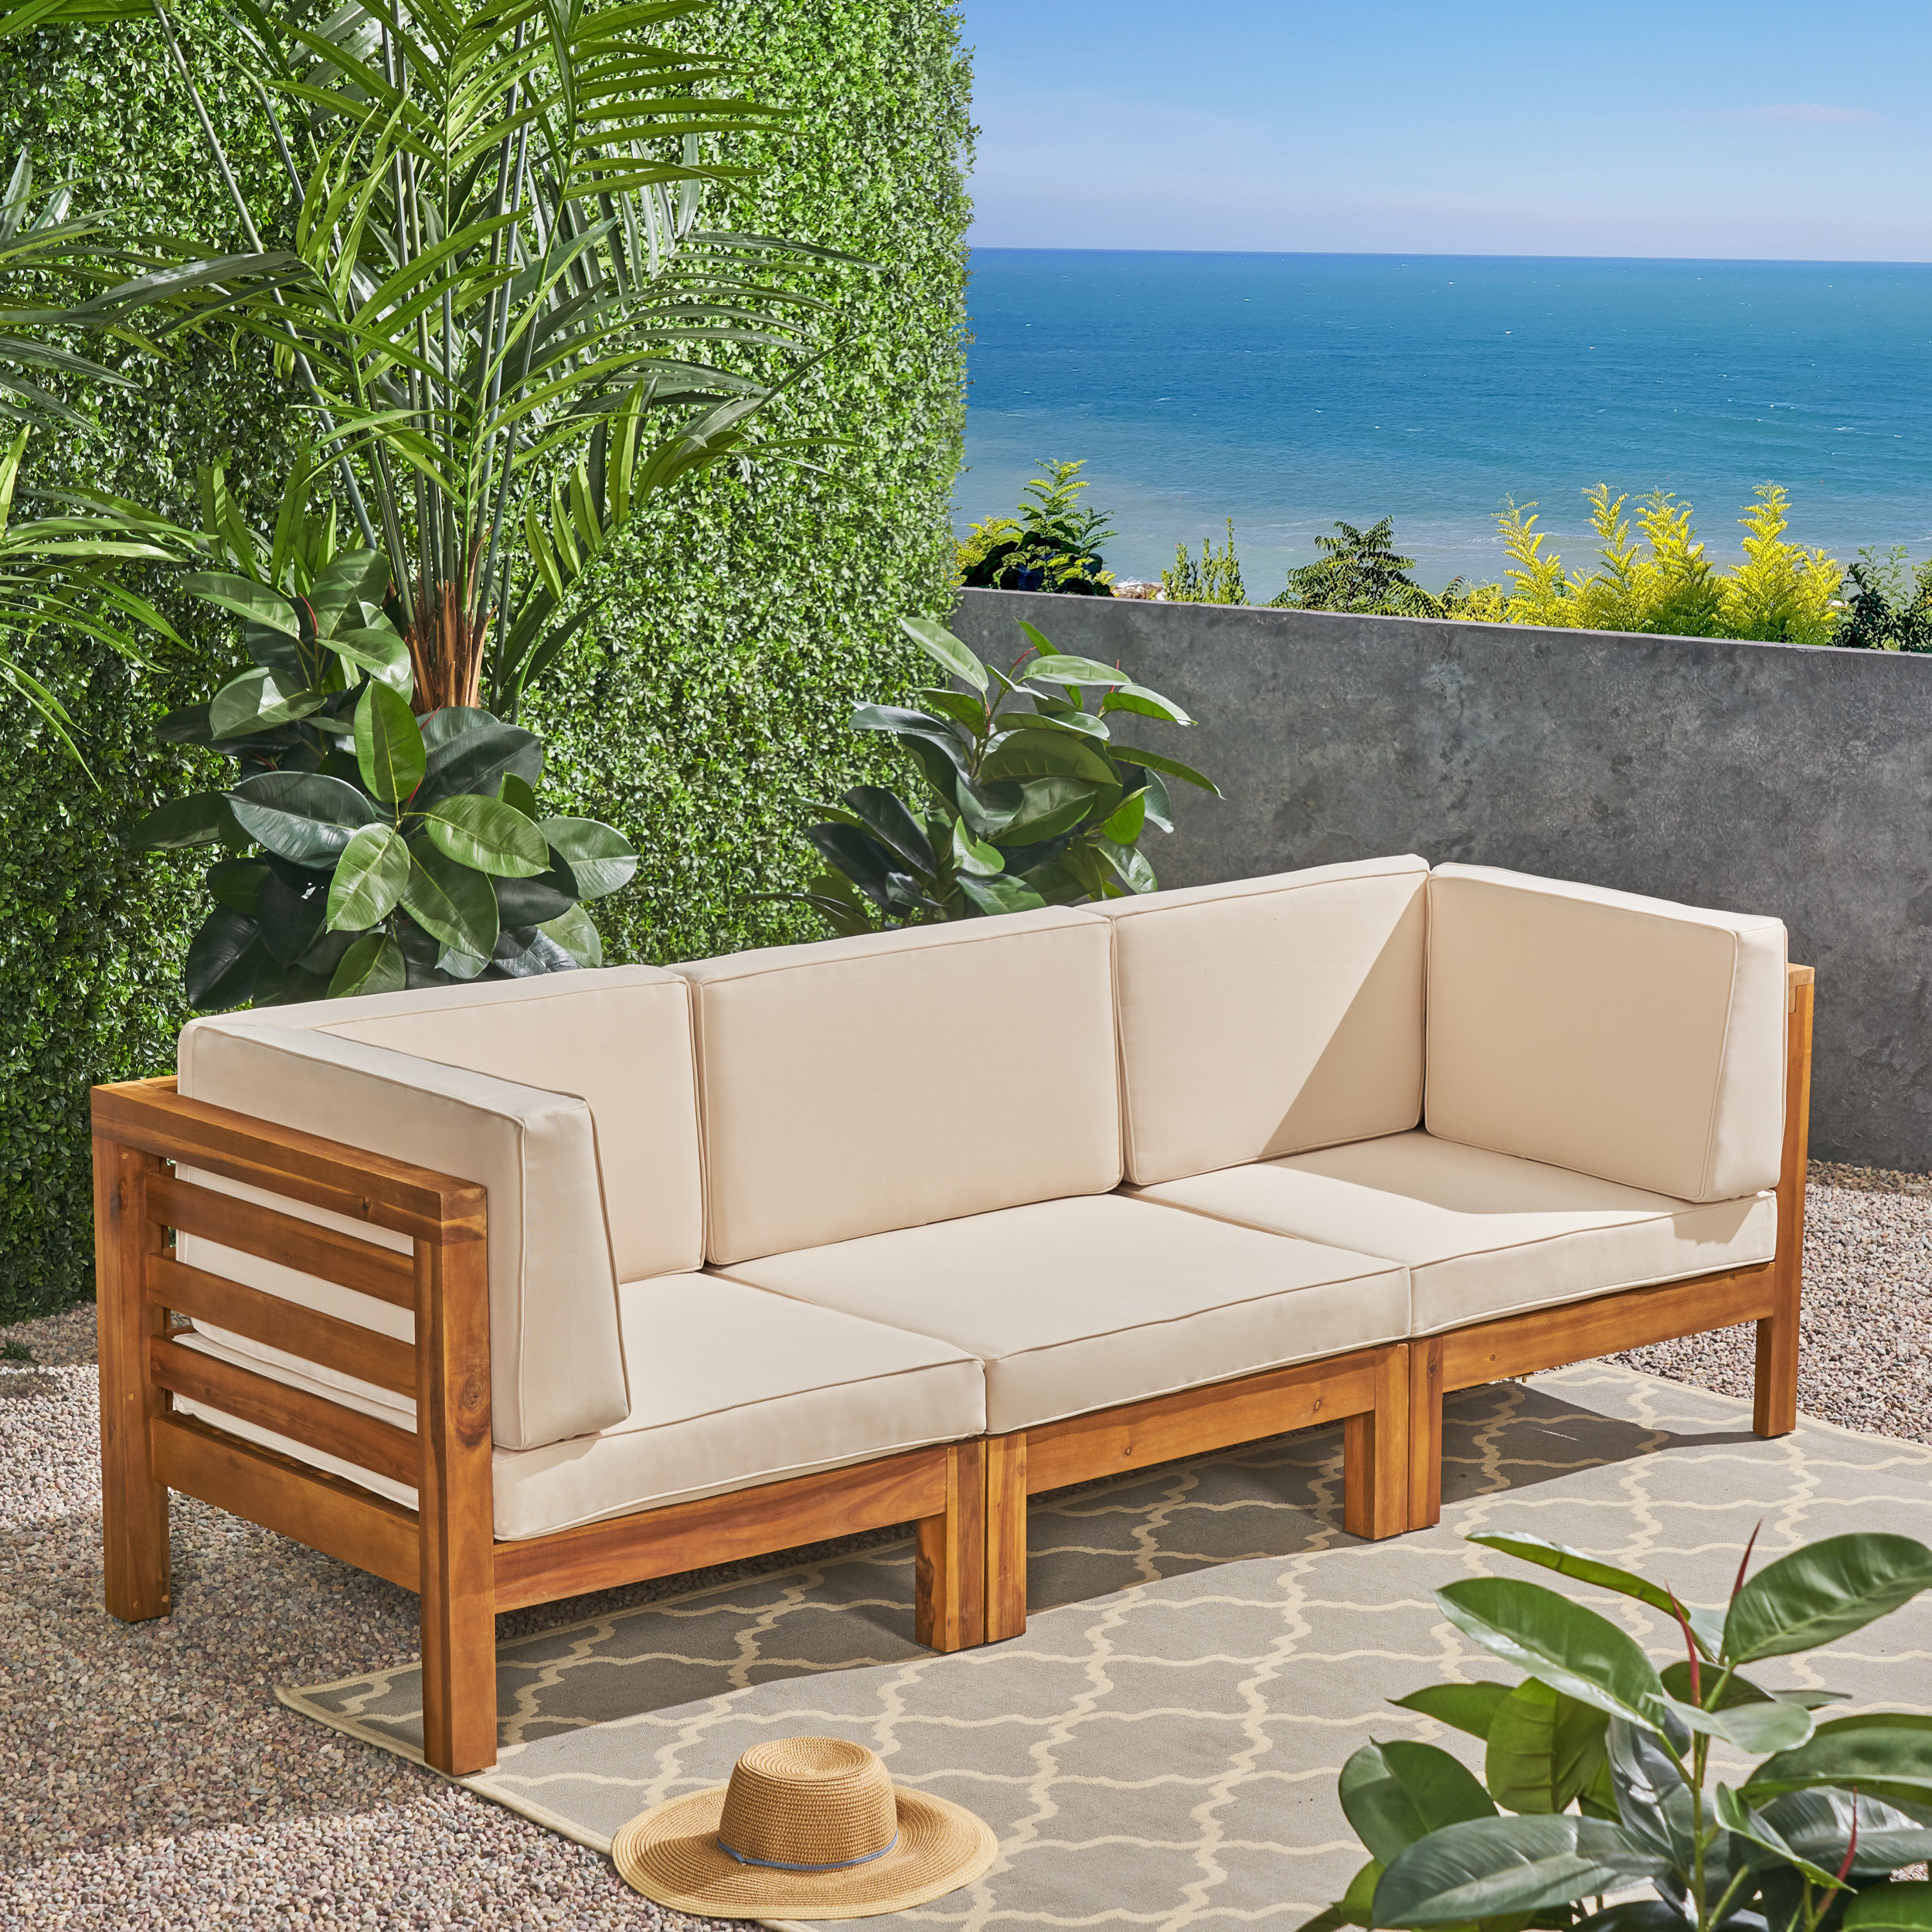 Famous Hursey Patio Sofas In Brayden Studio Seaham Teak Patio Sofa With Cushions (View 6 of 20)